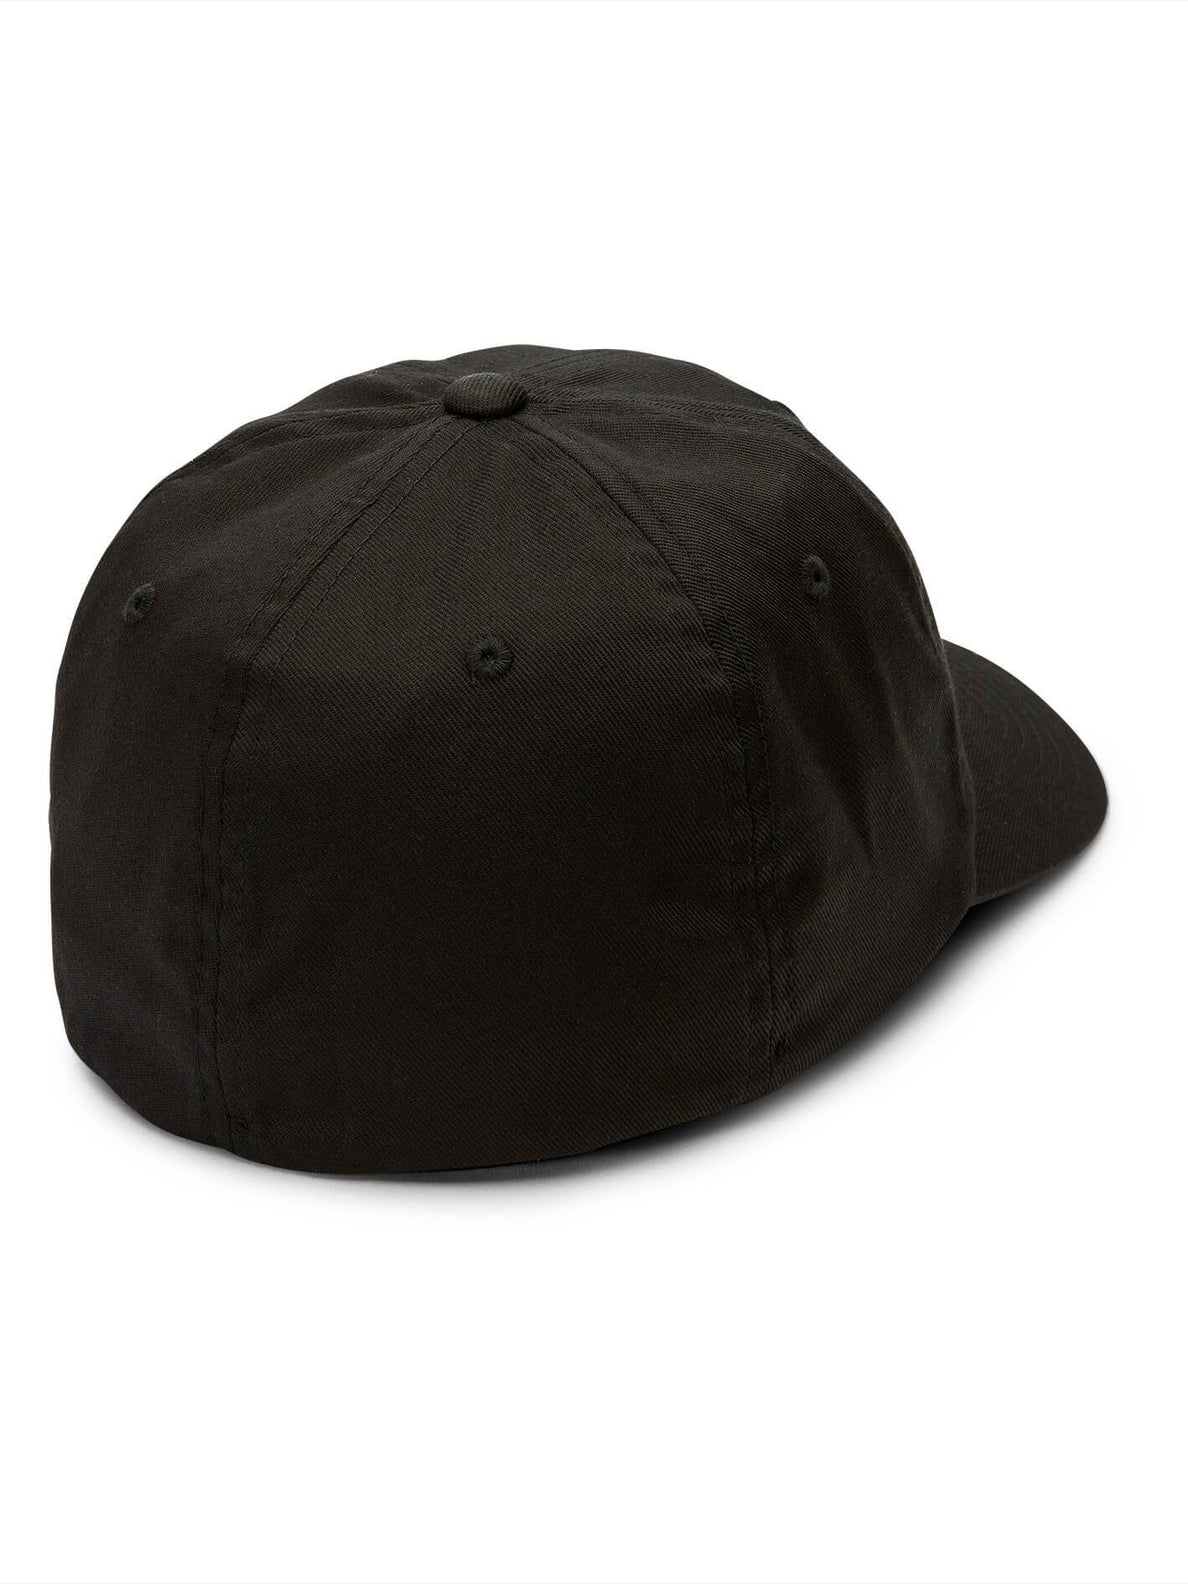 Stone Radiator Xfit Hat In Black, Back View